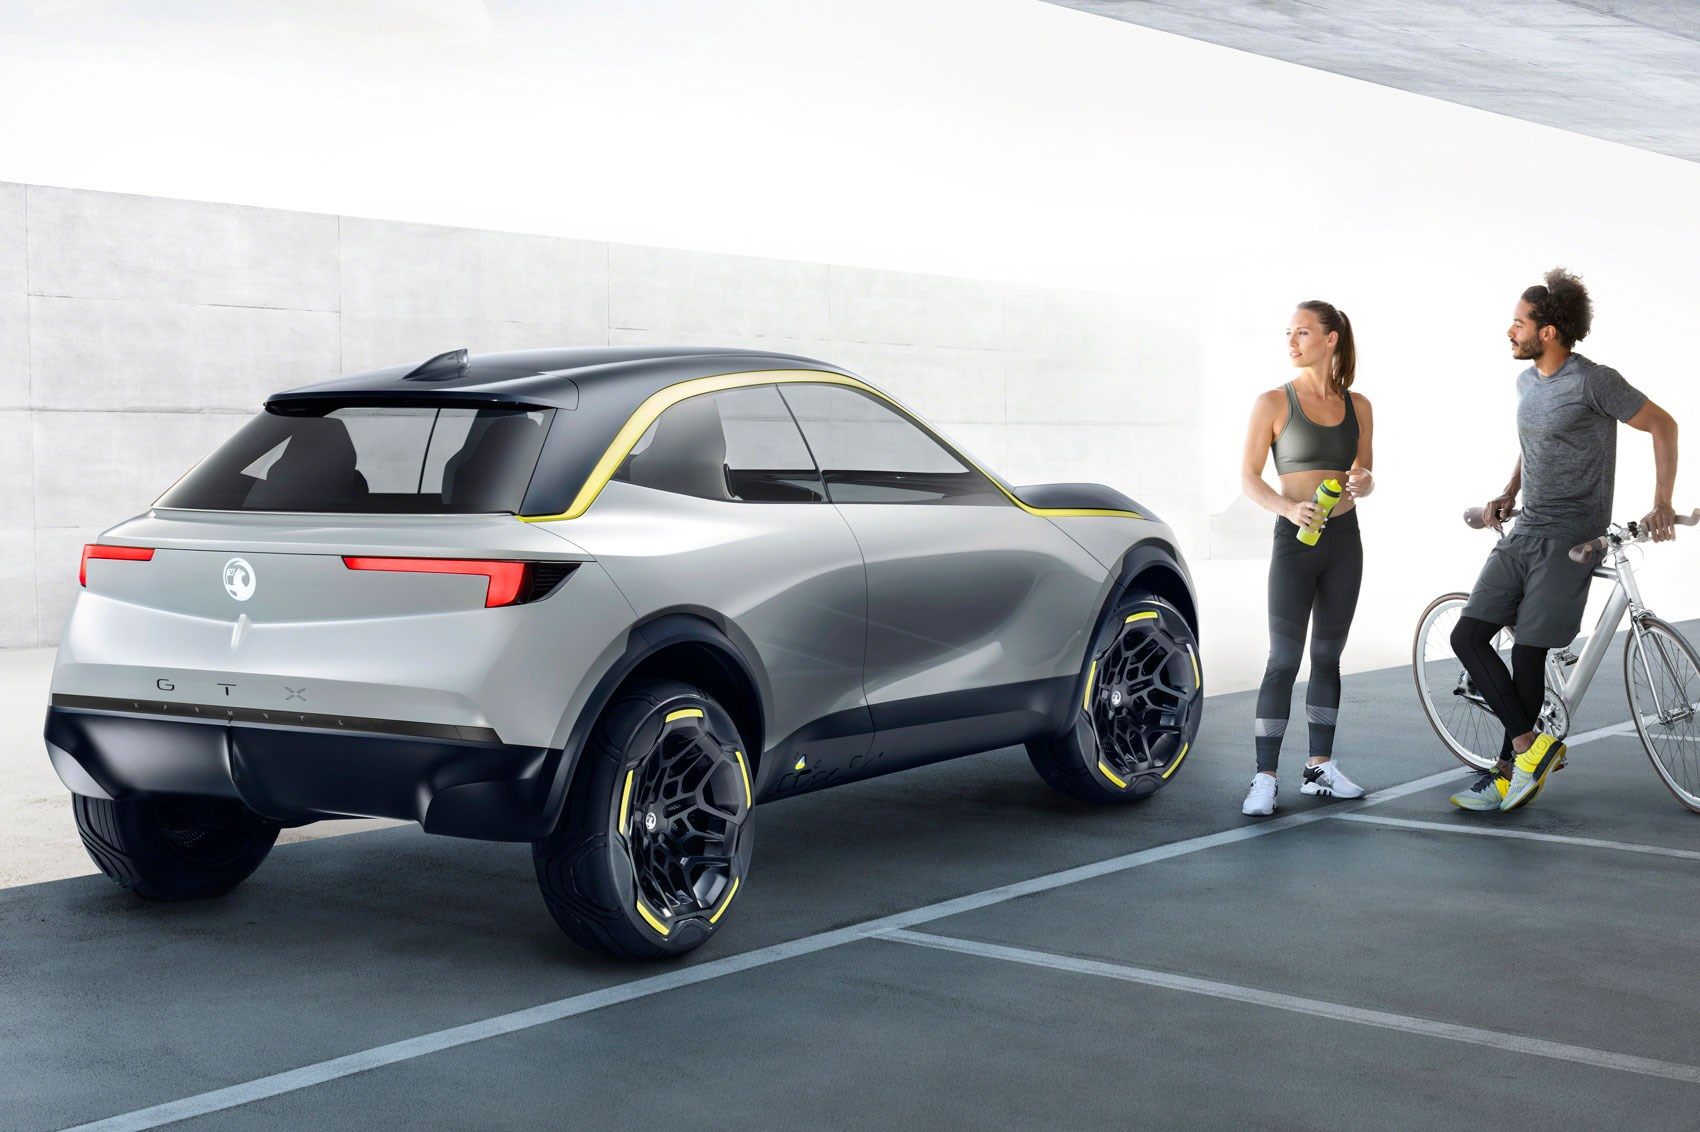 GT X Experimental concept shows new face of future ...